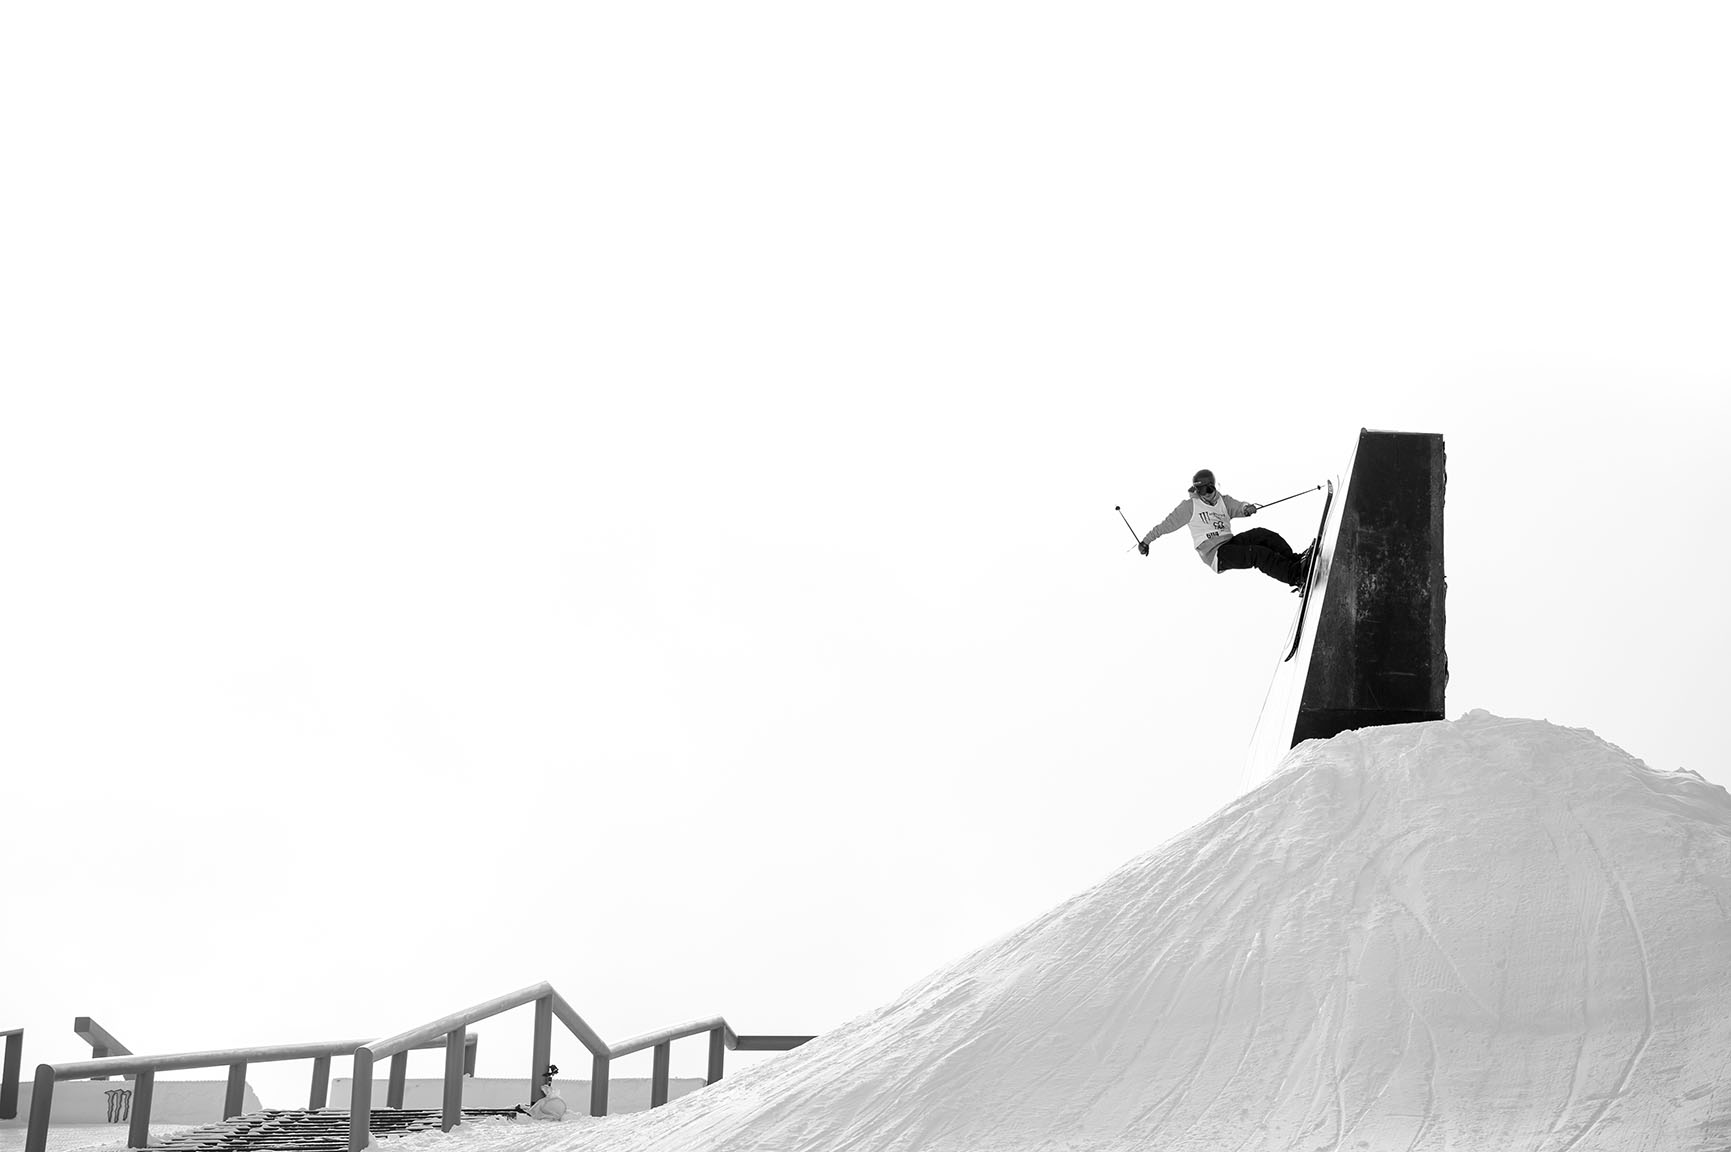 James Woods, Ski Slopestyle Qualifier